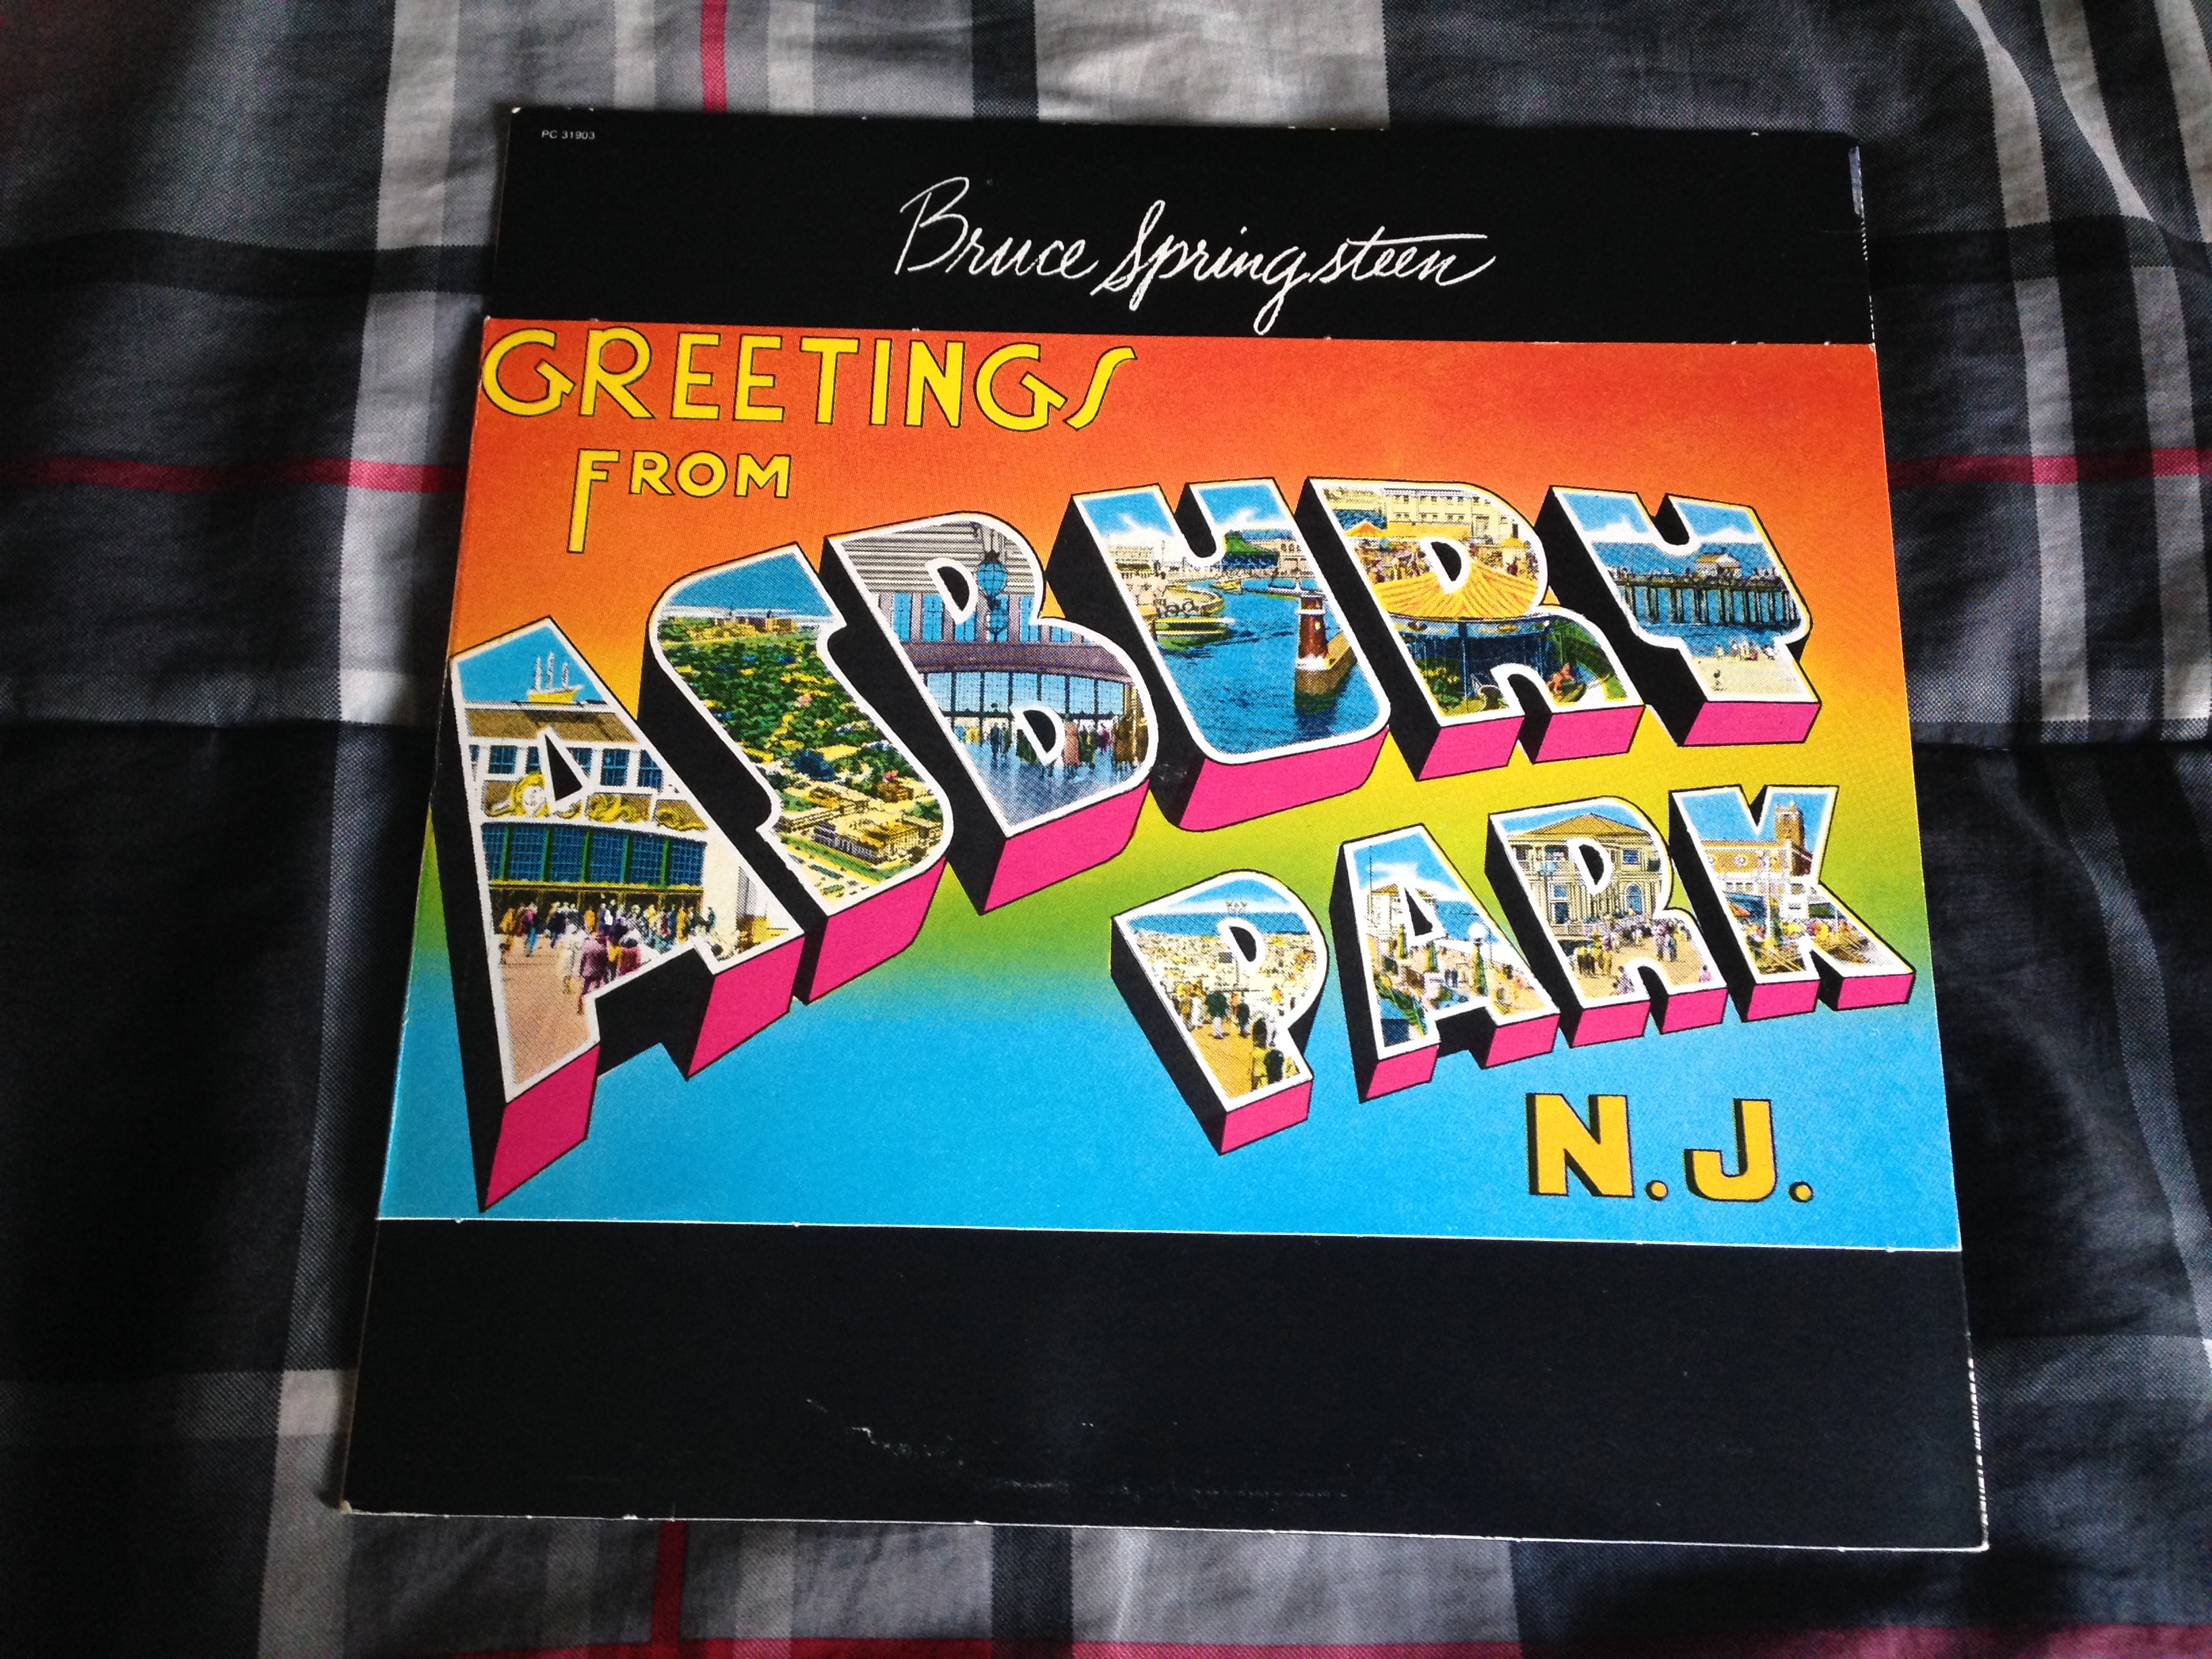 Vinyl special greetings from asbury park nj by bruce vinyl special greetings from asbury park nj by bruce springsteen m4hsunfo